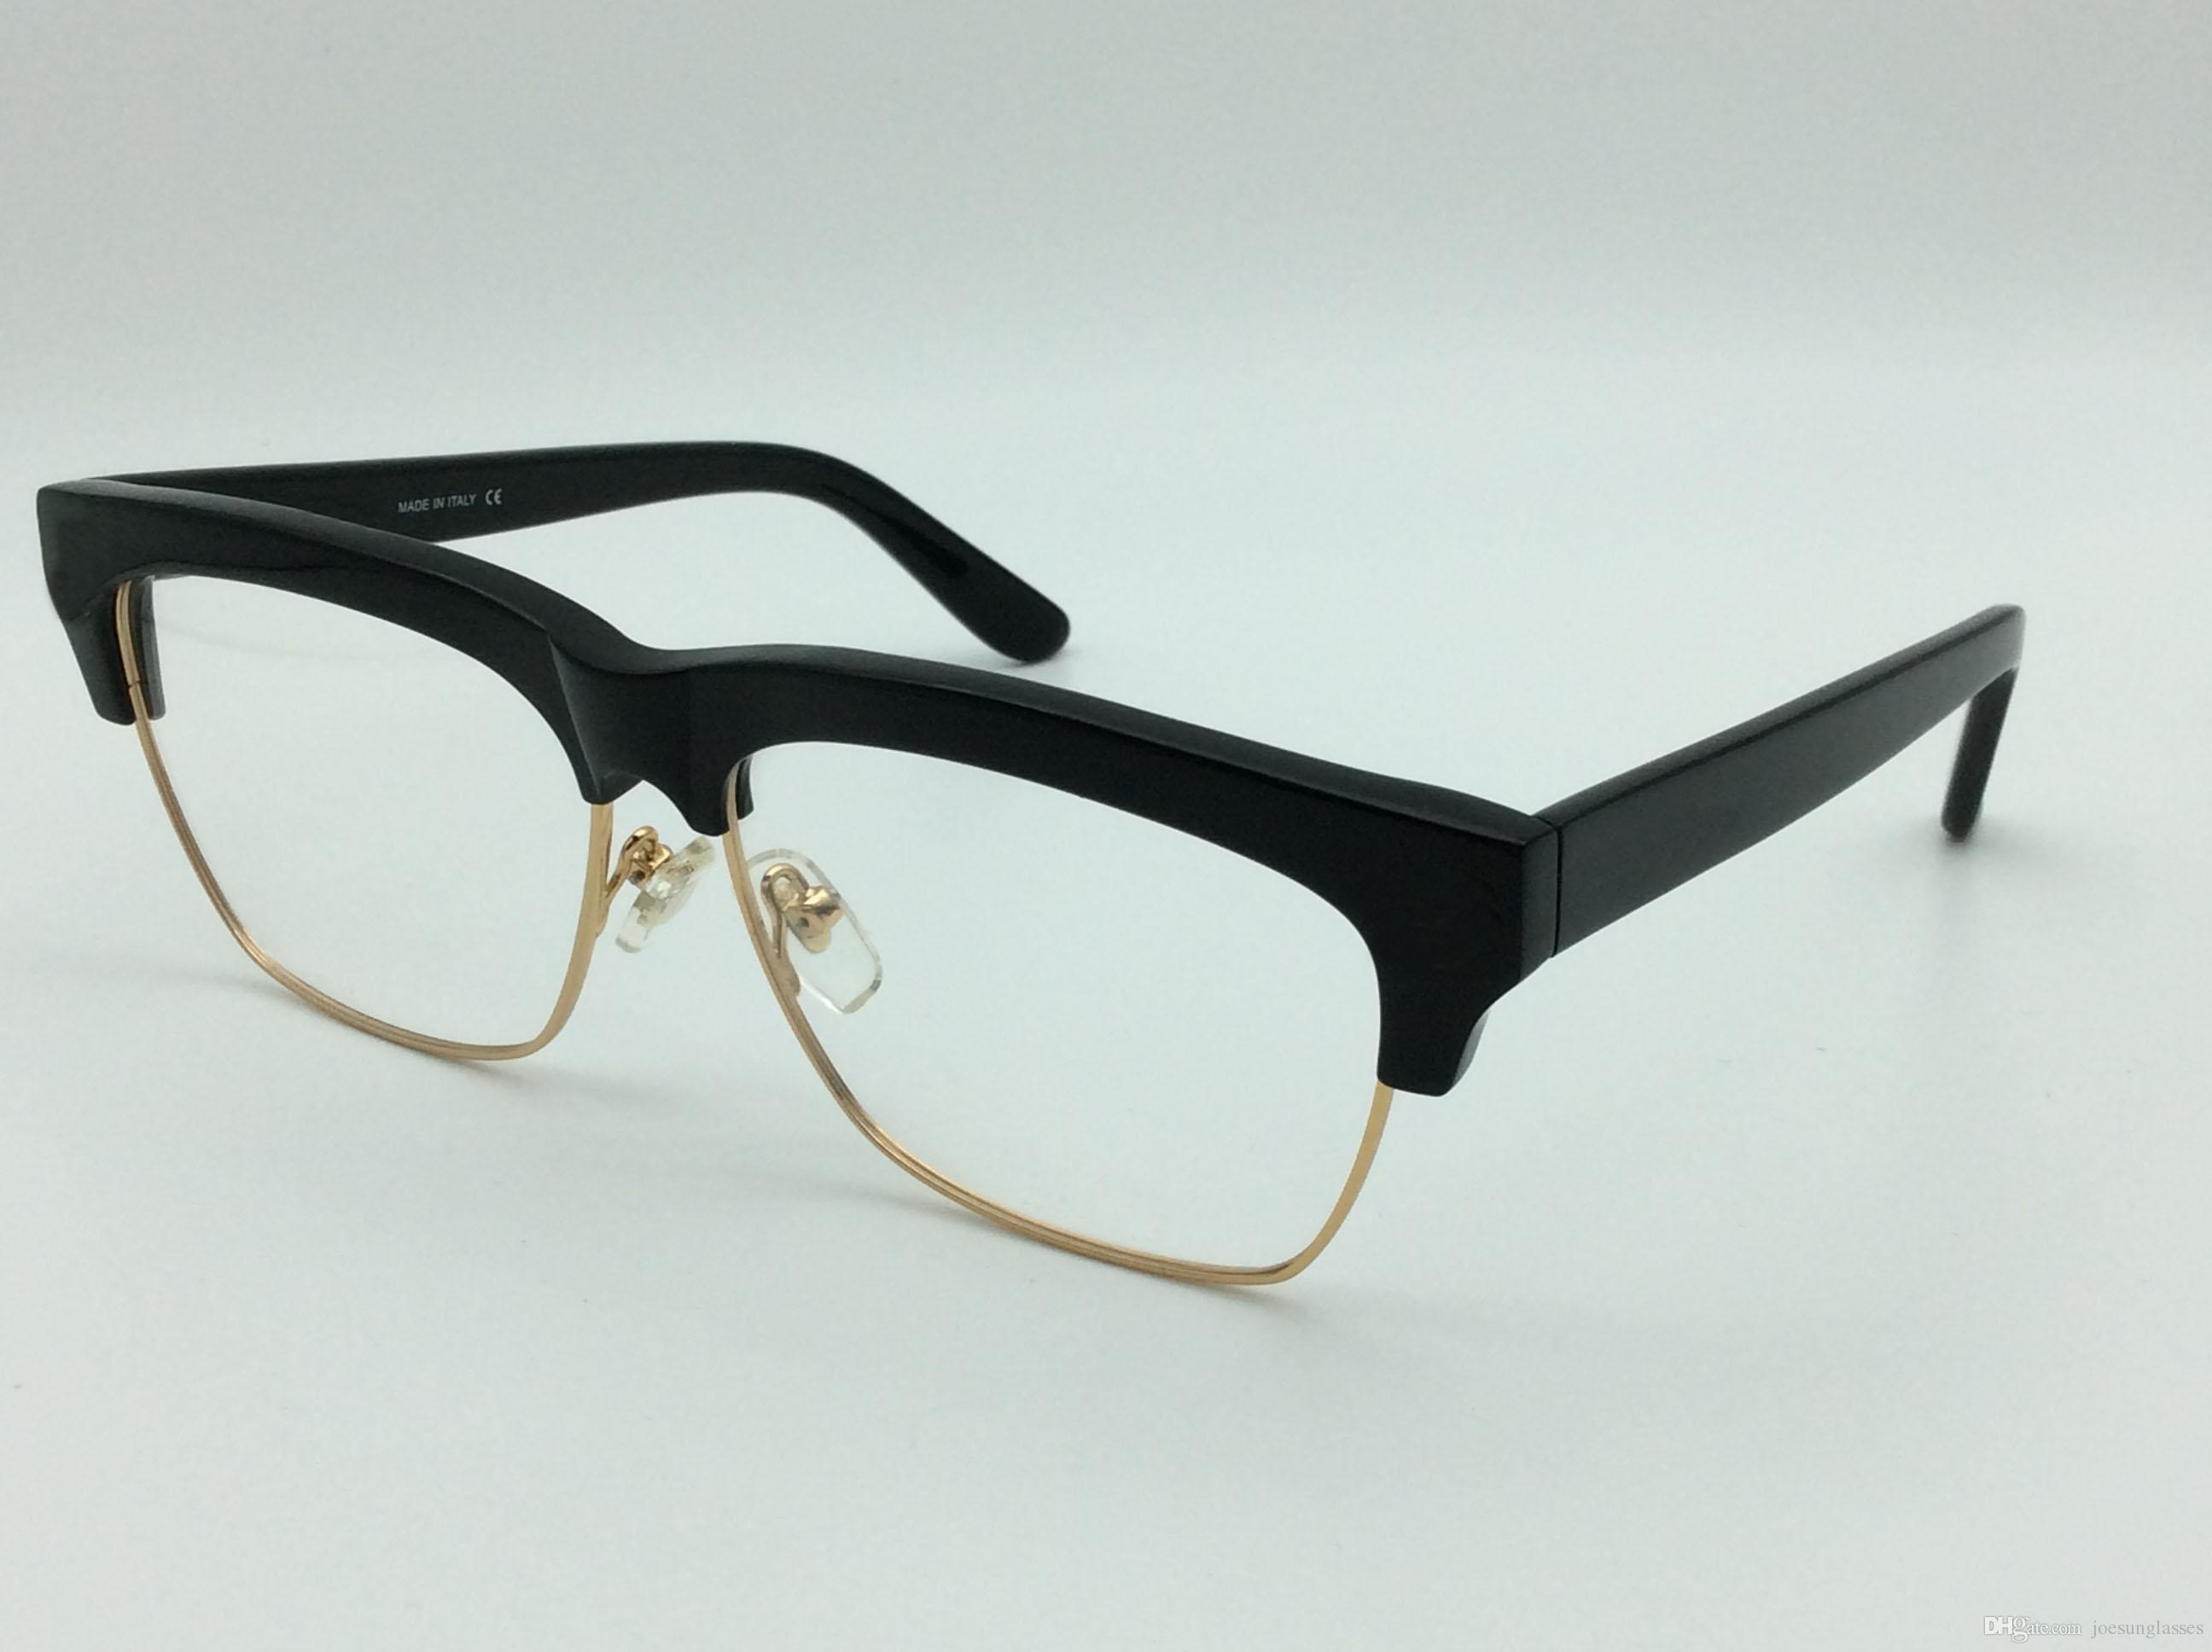 6eeb15aa790a 2019 Medusa Glasses Prescription Eyewear Frame Vintage Frame Men Brand Designer  Eyeglasses Semi Rimless Frame Face Logo Original Case From Brandjewellery,  ...